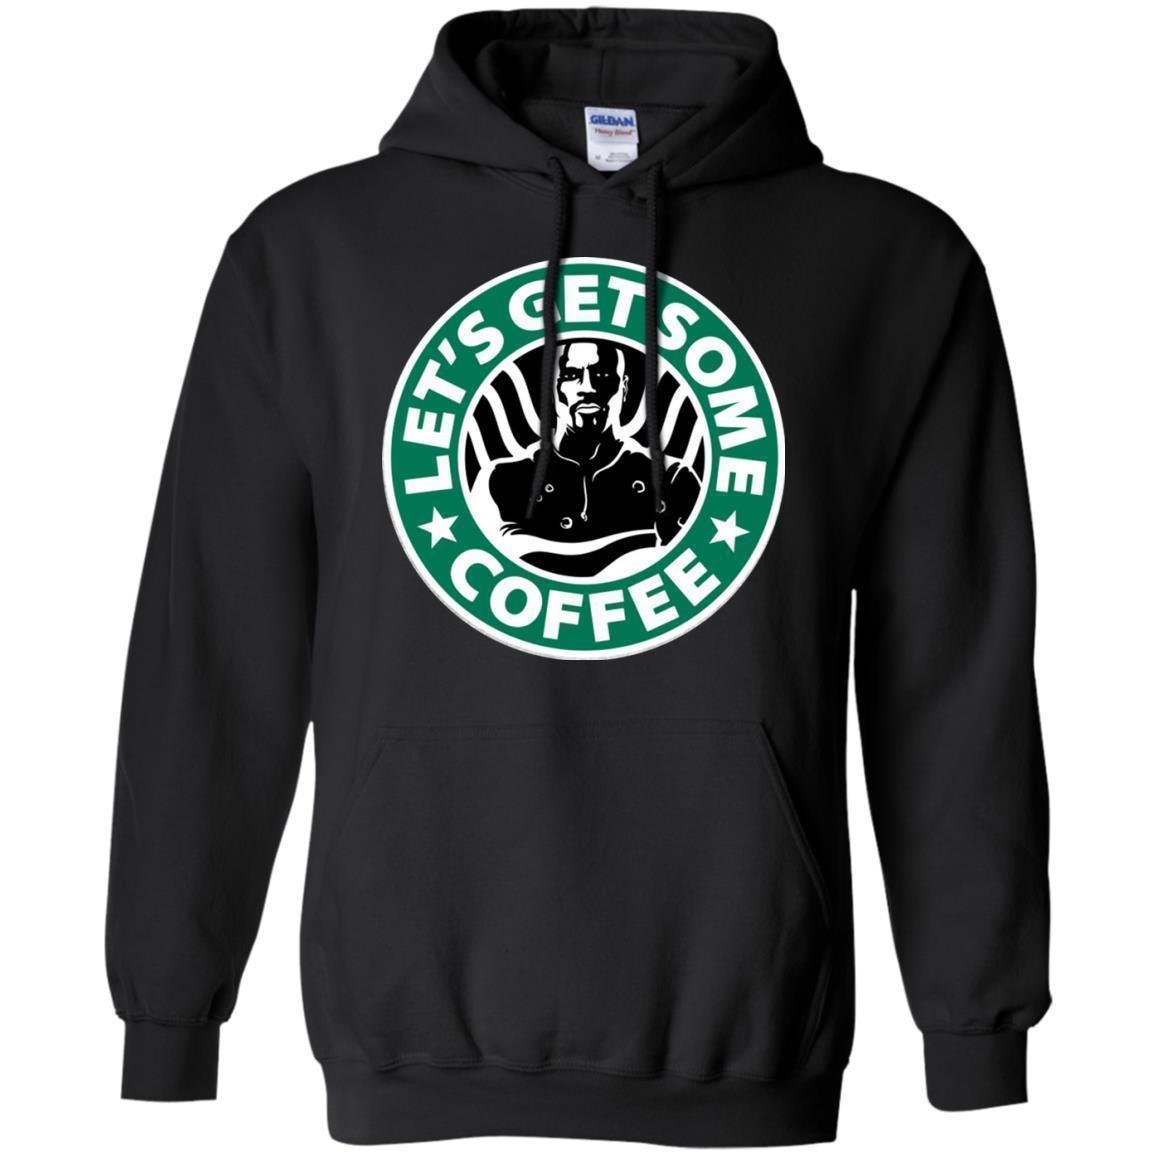 Luke Cage Let's Get Some Coffee Hoodie